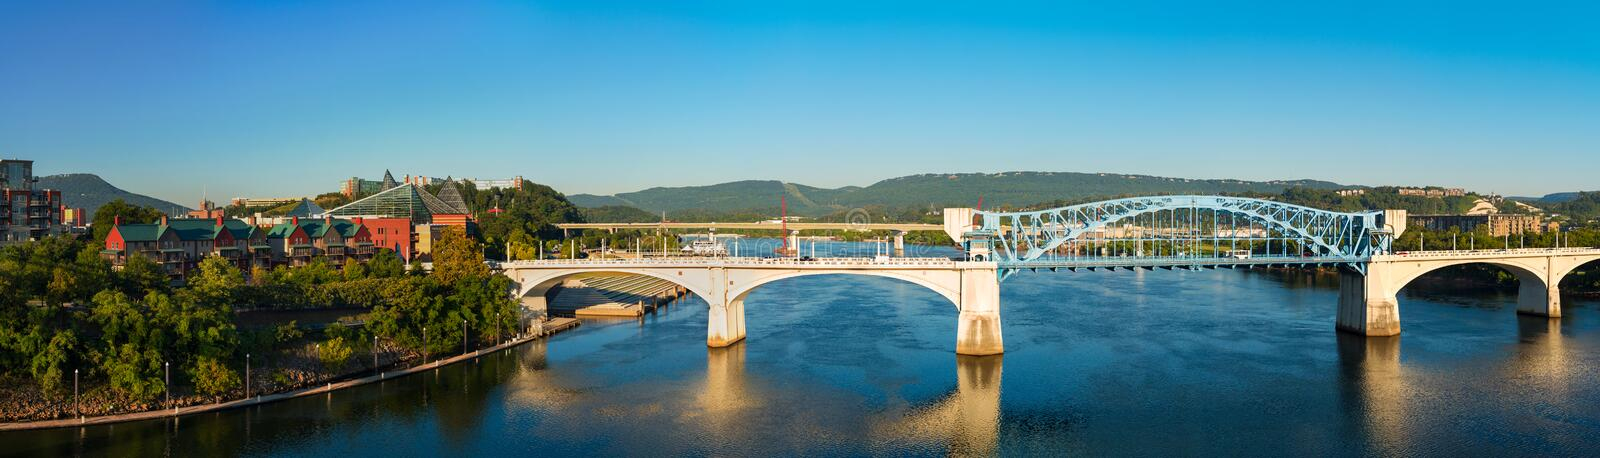 Chattanooga panorama obrazy royalty free